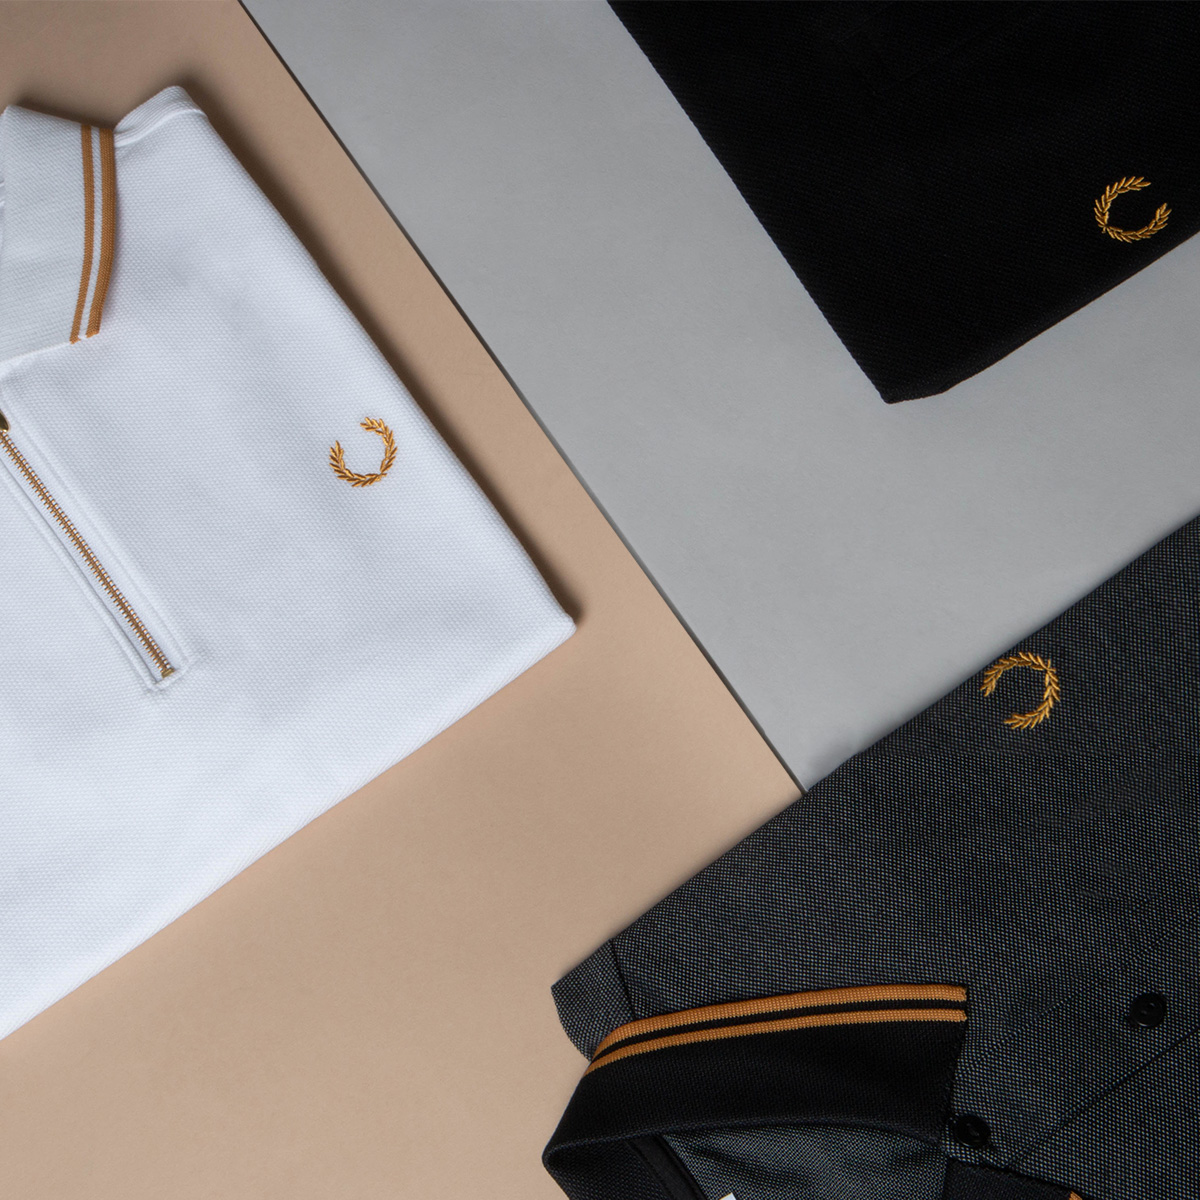 neatly folded Fred Perry x miles kane polo shirts